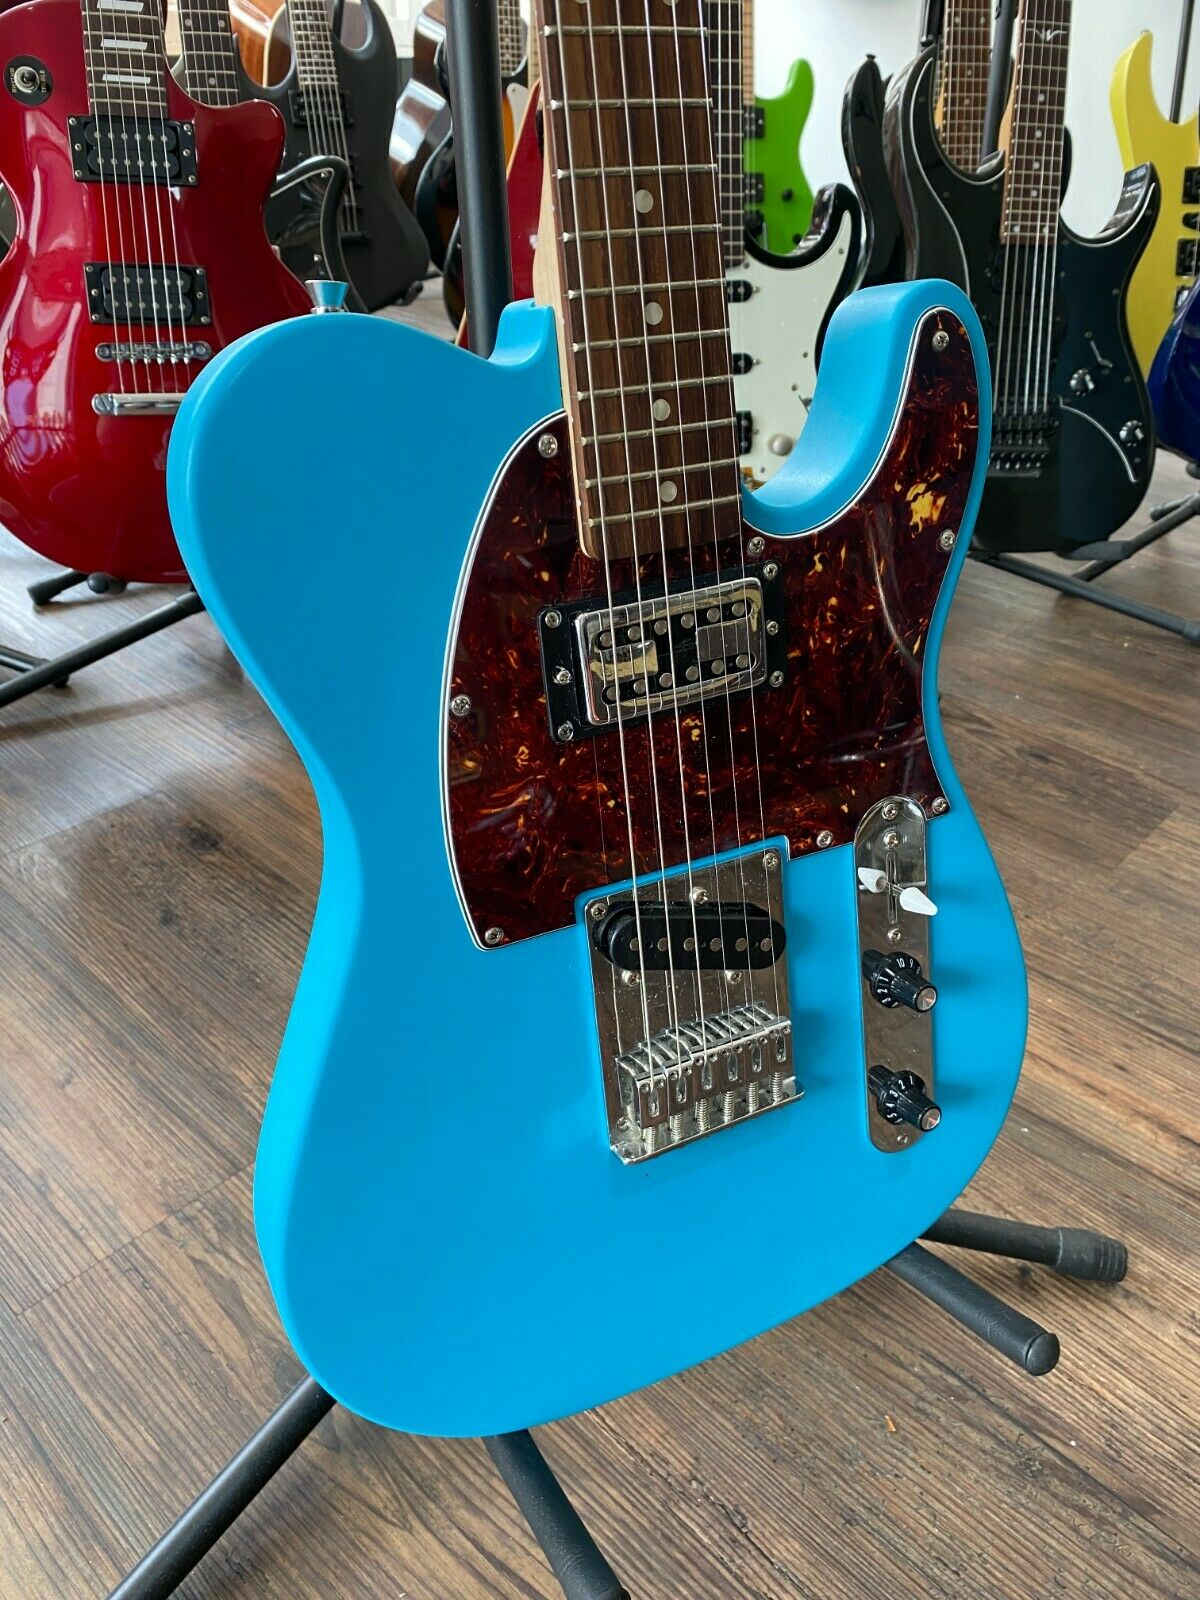 This Squier Telecaster electric guitar is for sale - Squier Affinity Telecaster Electric Guitar (China, 2014, with upgrades and mods)